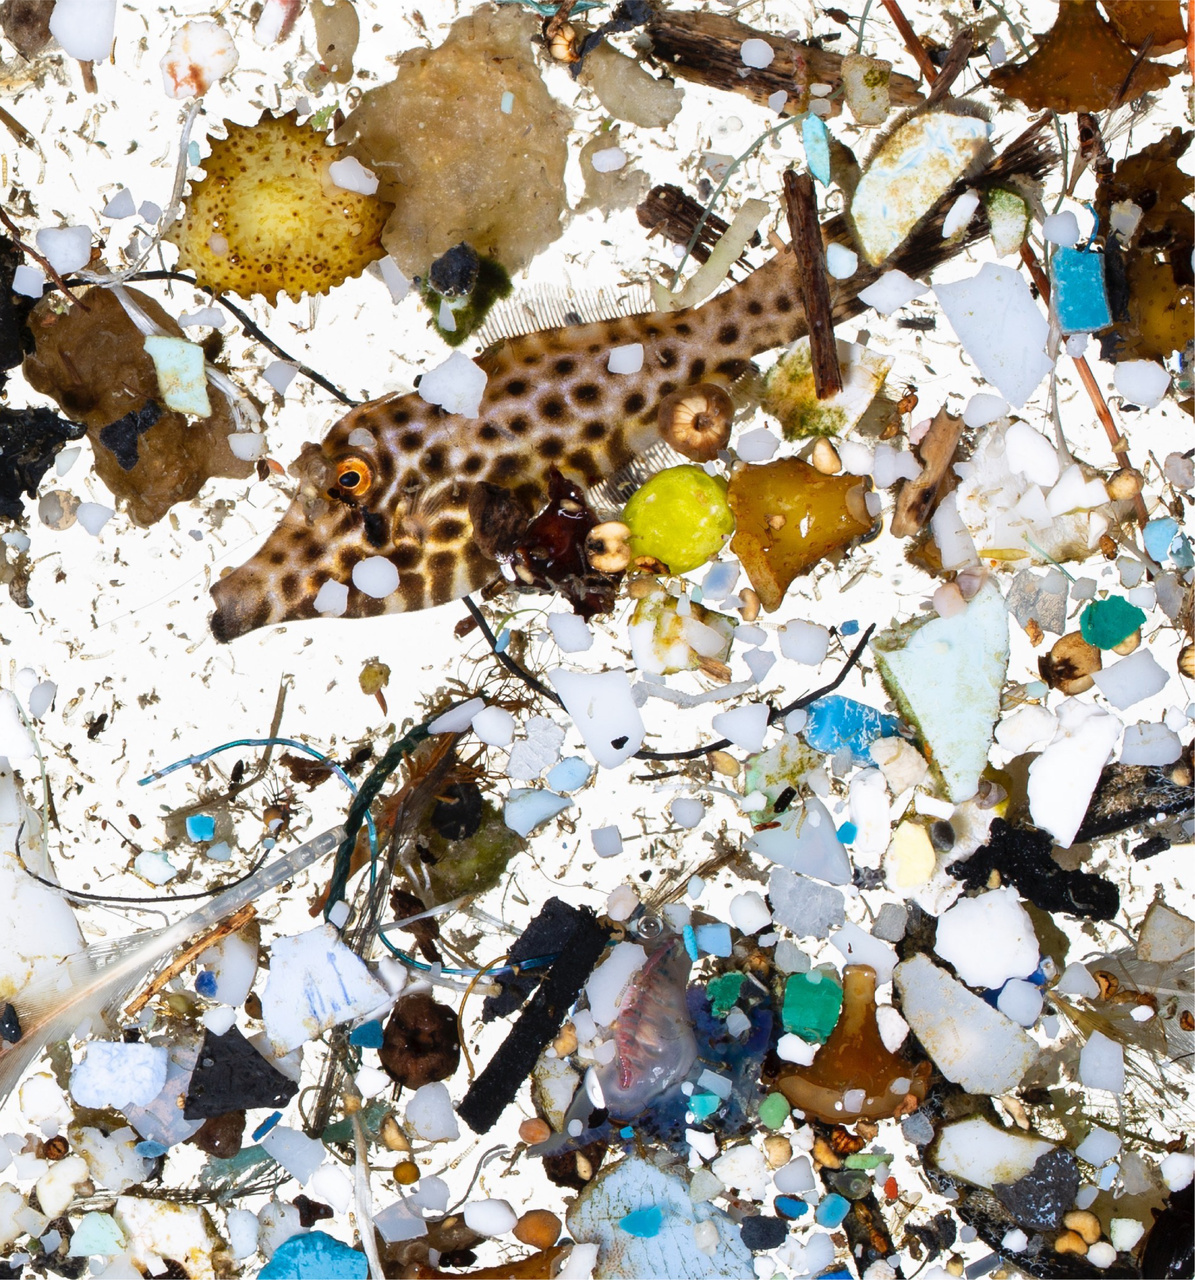 A scribbled filefish in a sea of plastics sampled from surface slicks off Hawai'i Island. Photo courtesy of David Liittschwager.